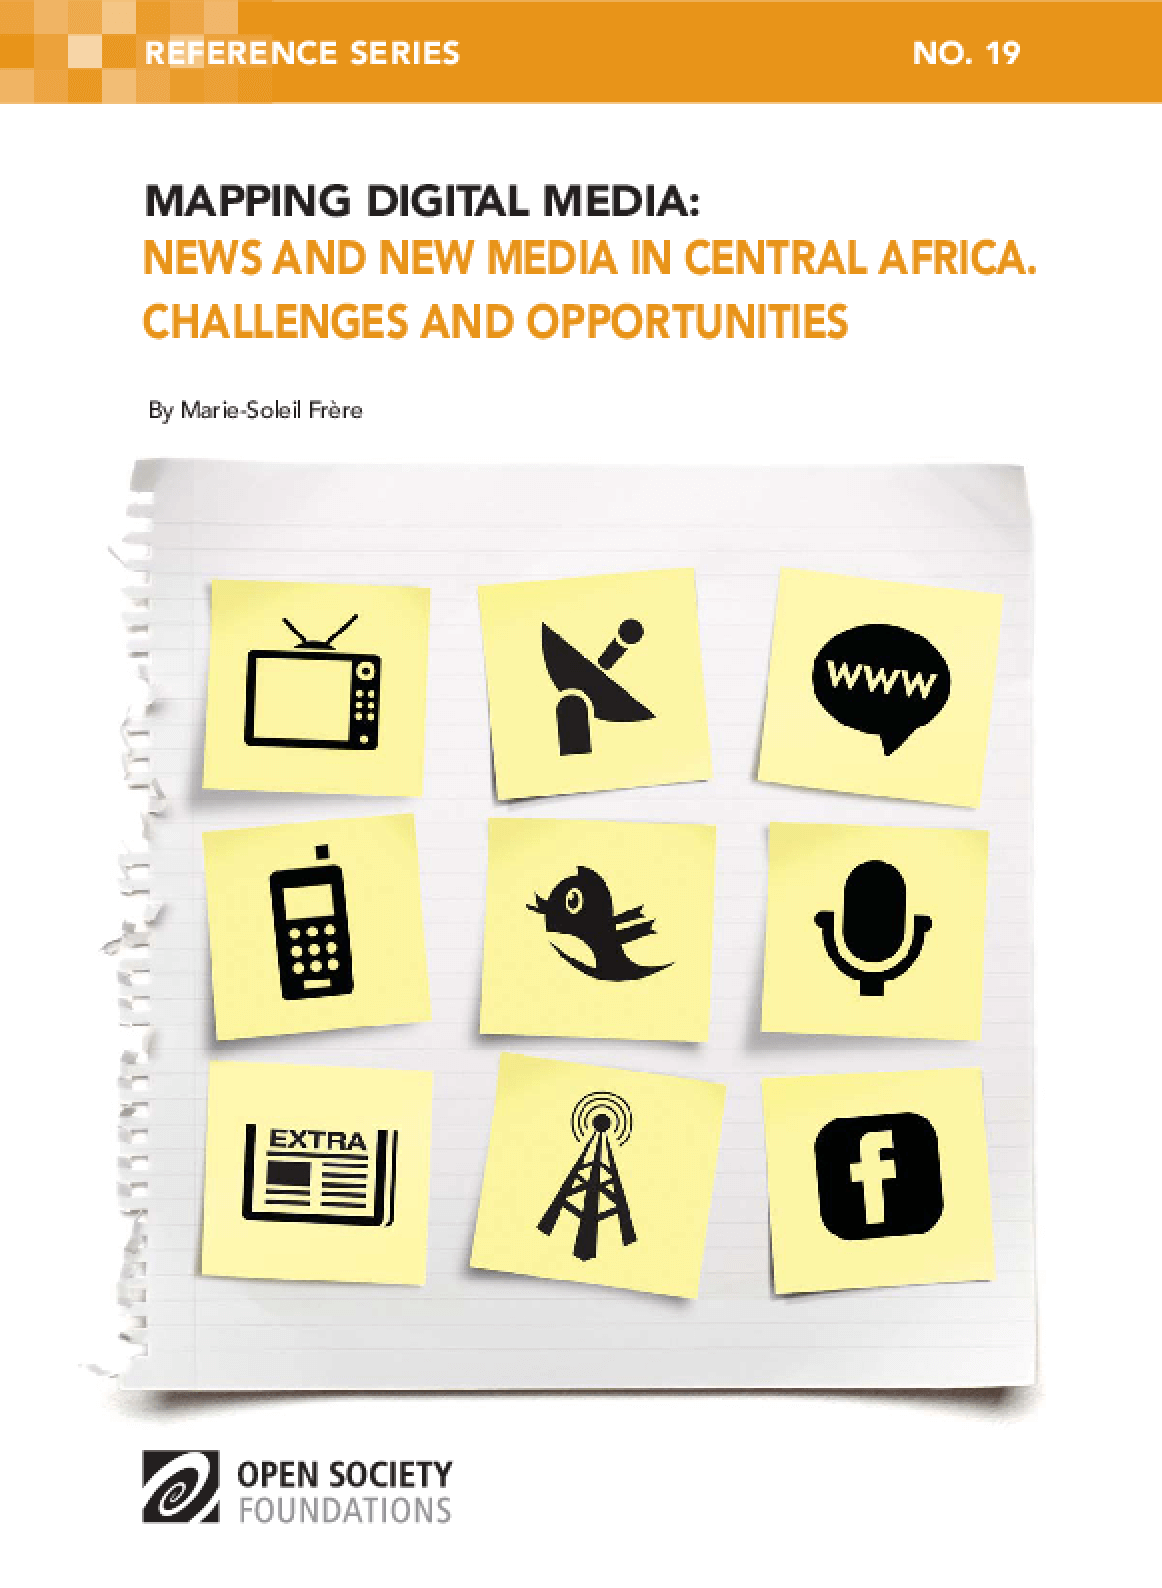 Mapping Digital Media: News and New Media in Central Africa - Challenges and Opportunities